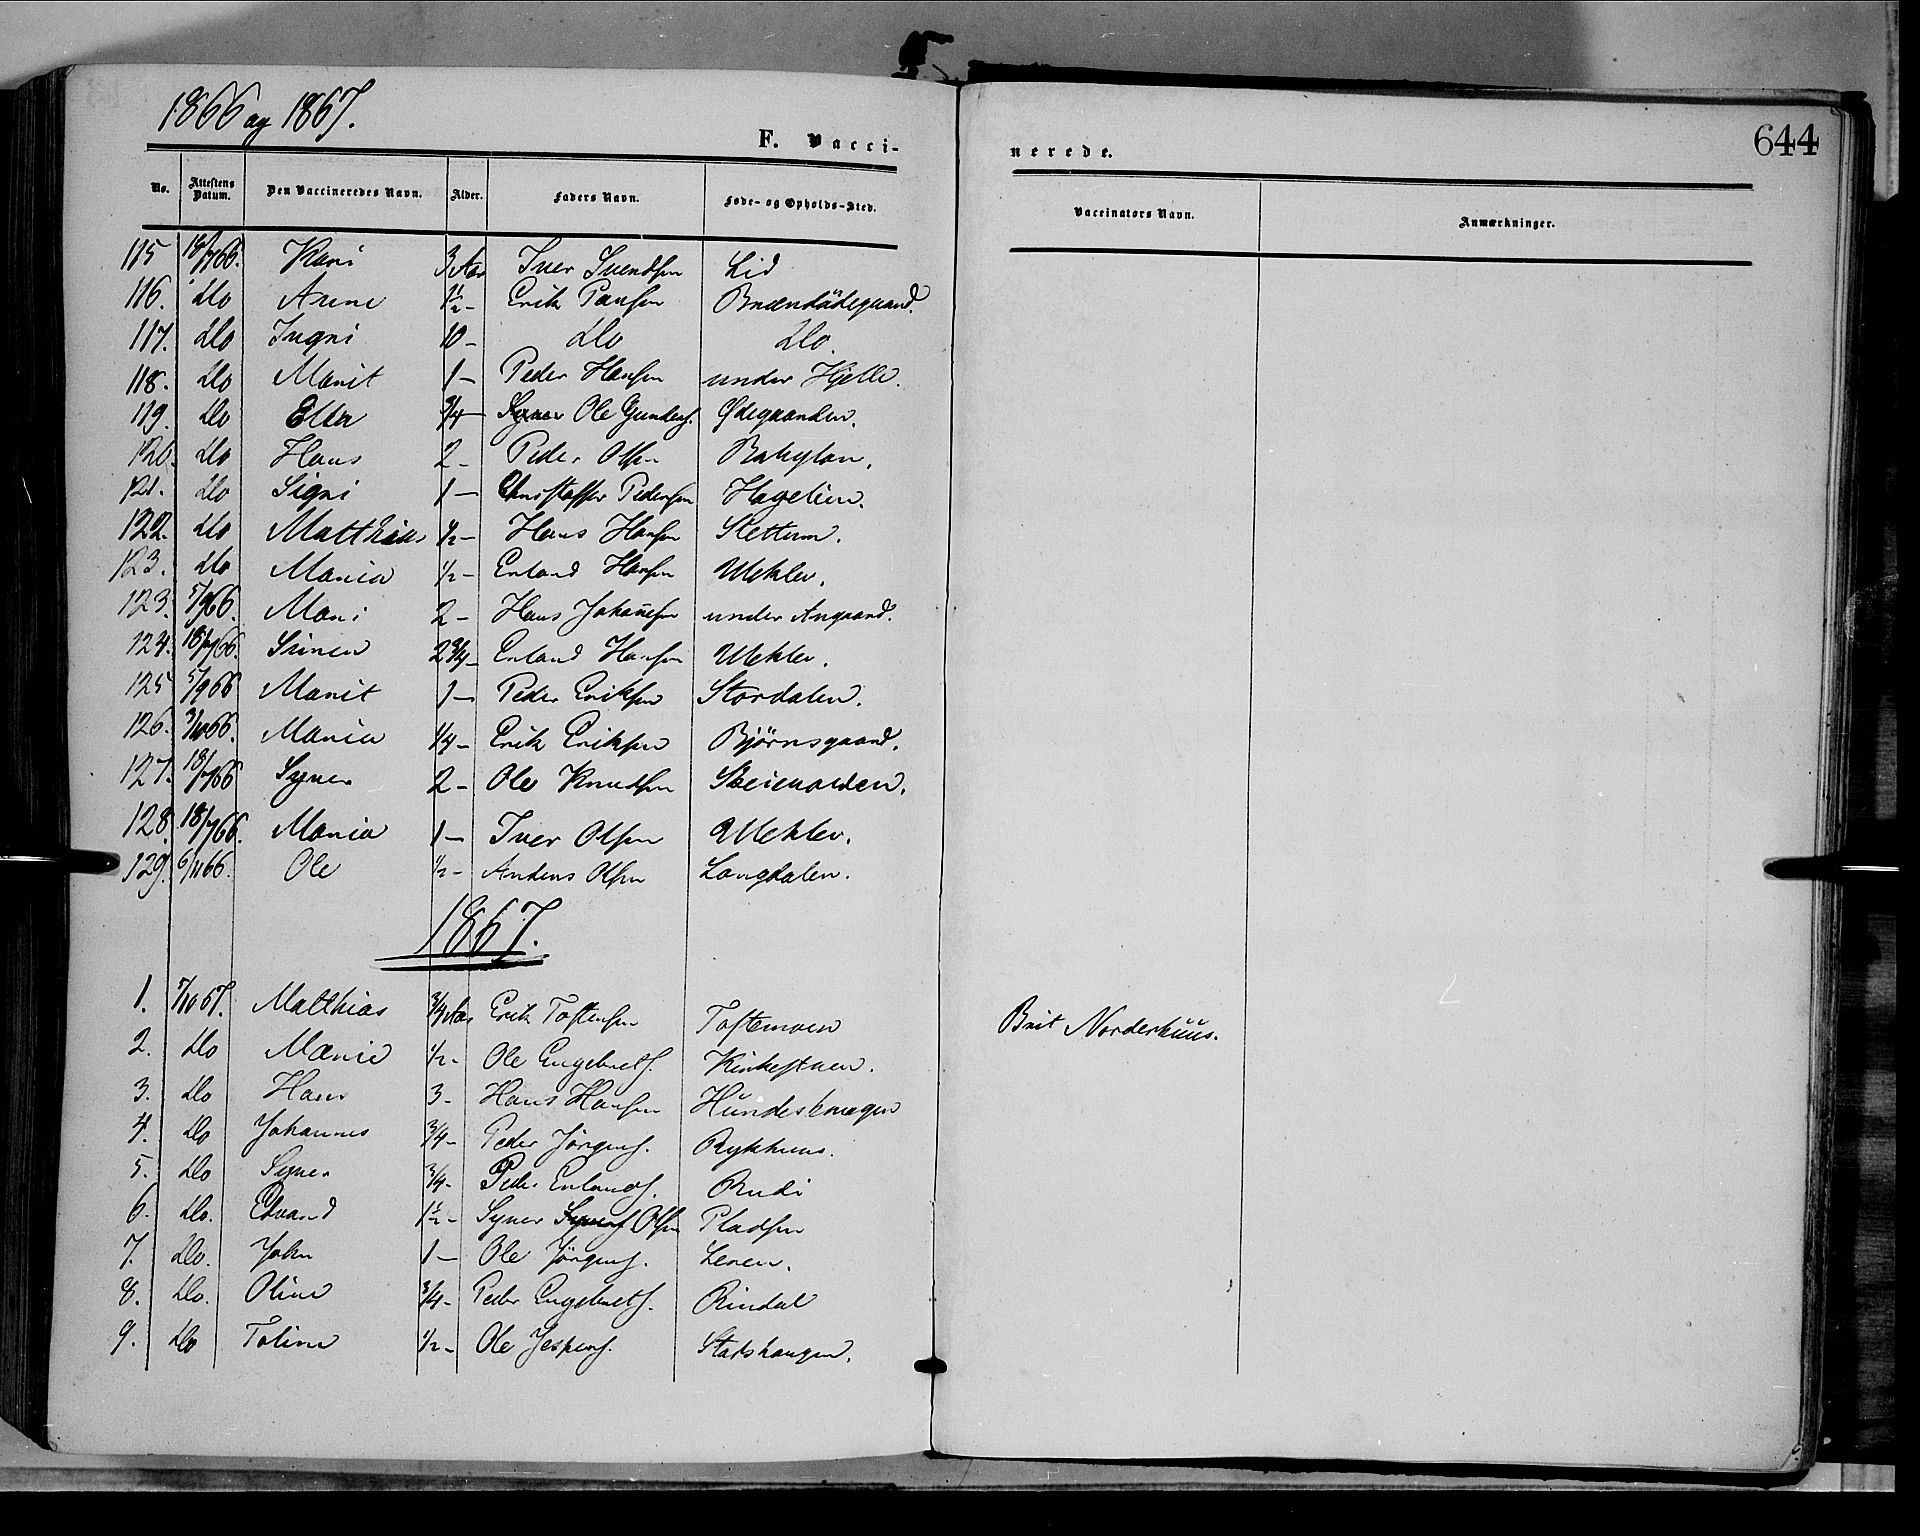 SAH, Dovre prestekontor, Parish register (official) no. 1, 1854-1878, p. 644